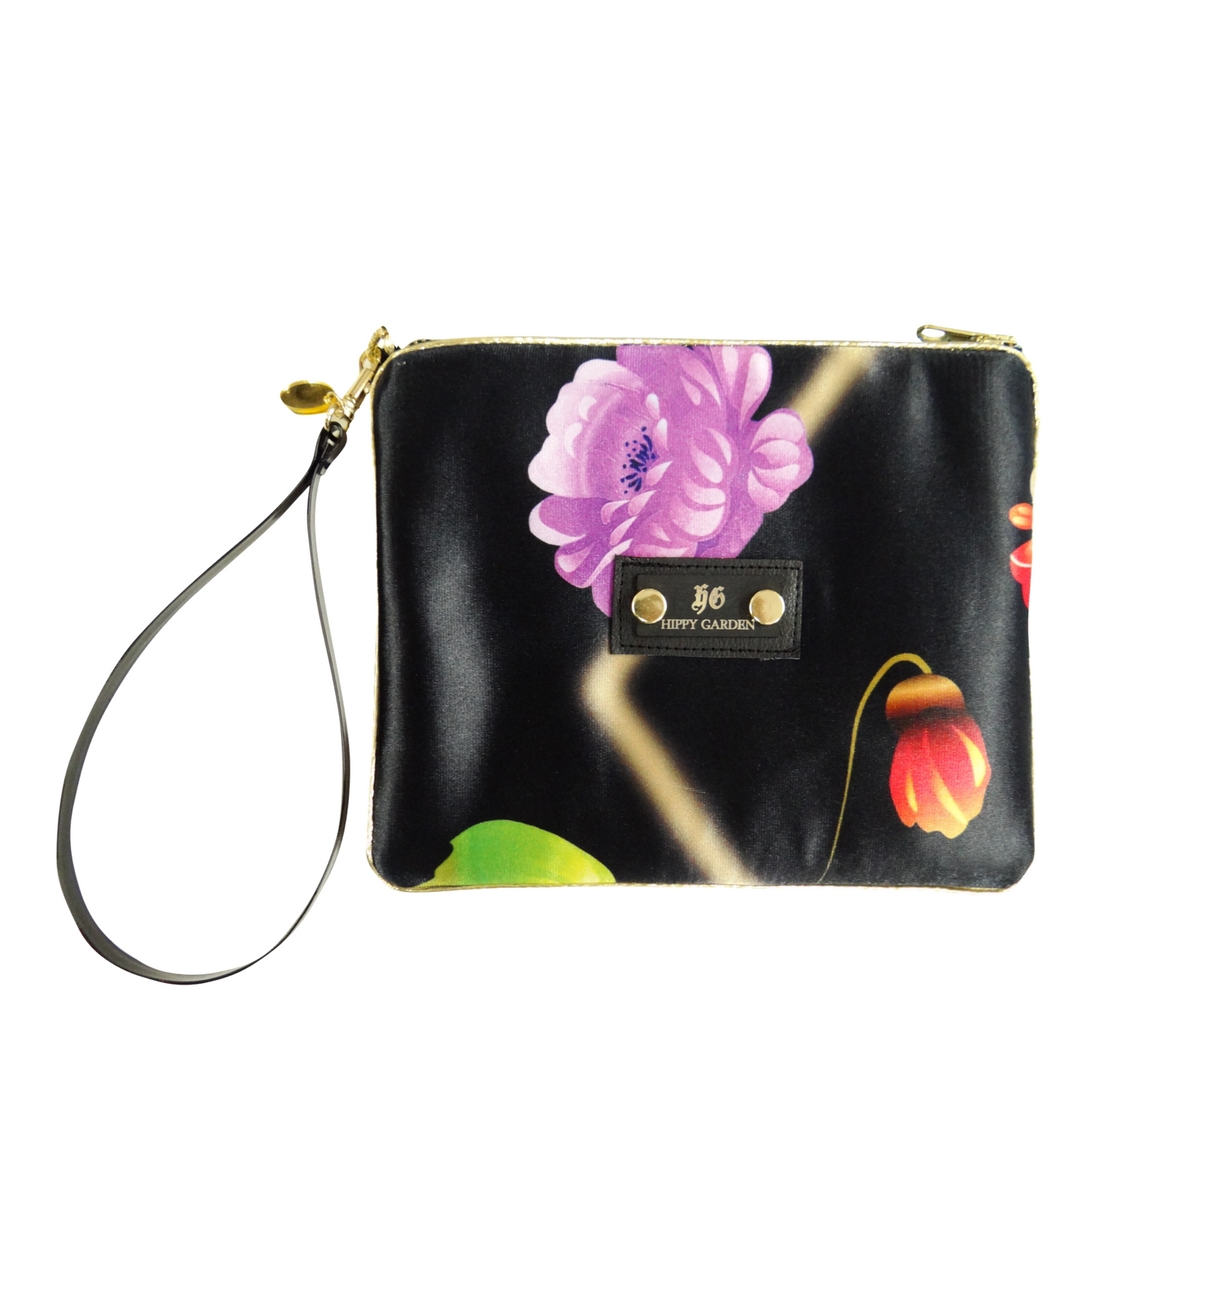 JOY FREQUENCY SCENTED CLUTCH BAG - BLACK